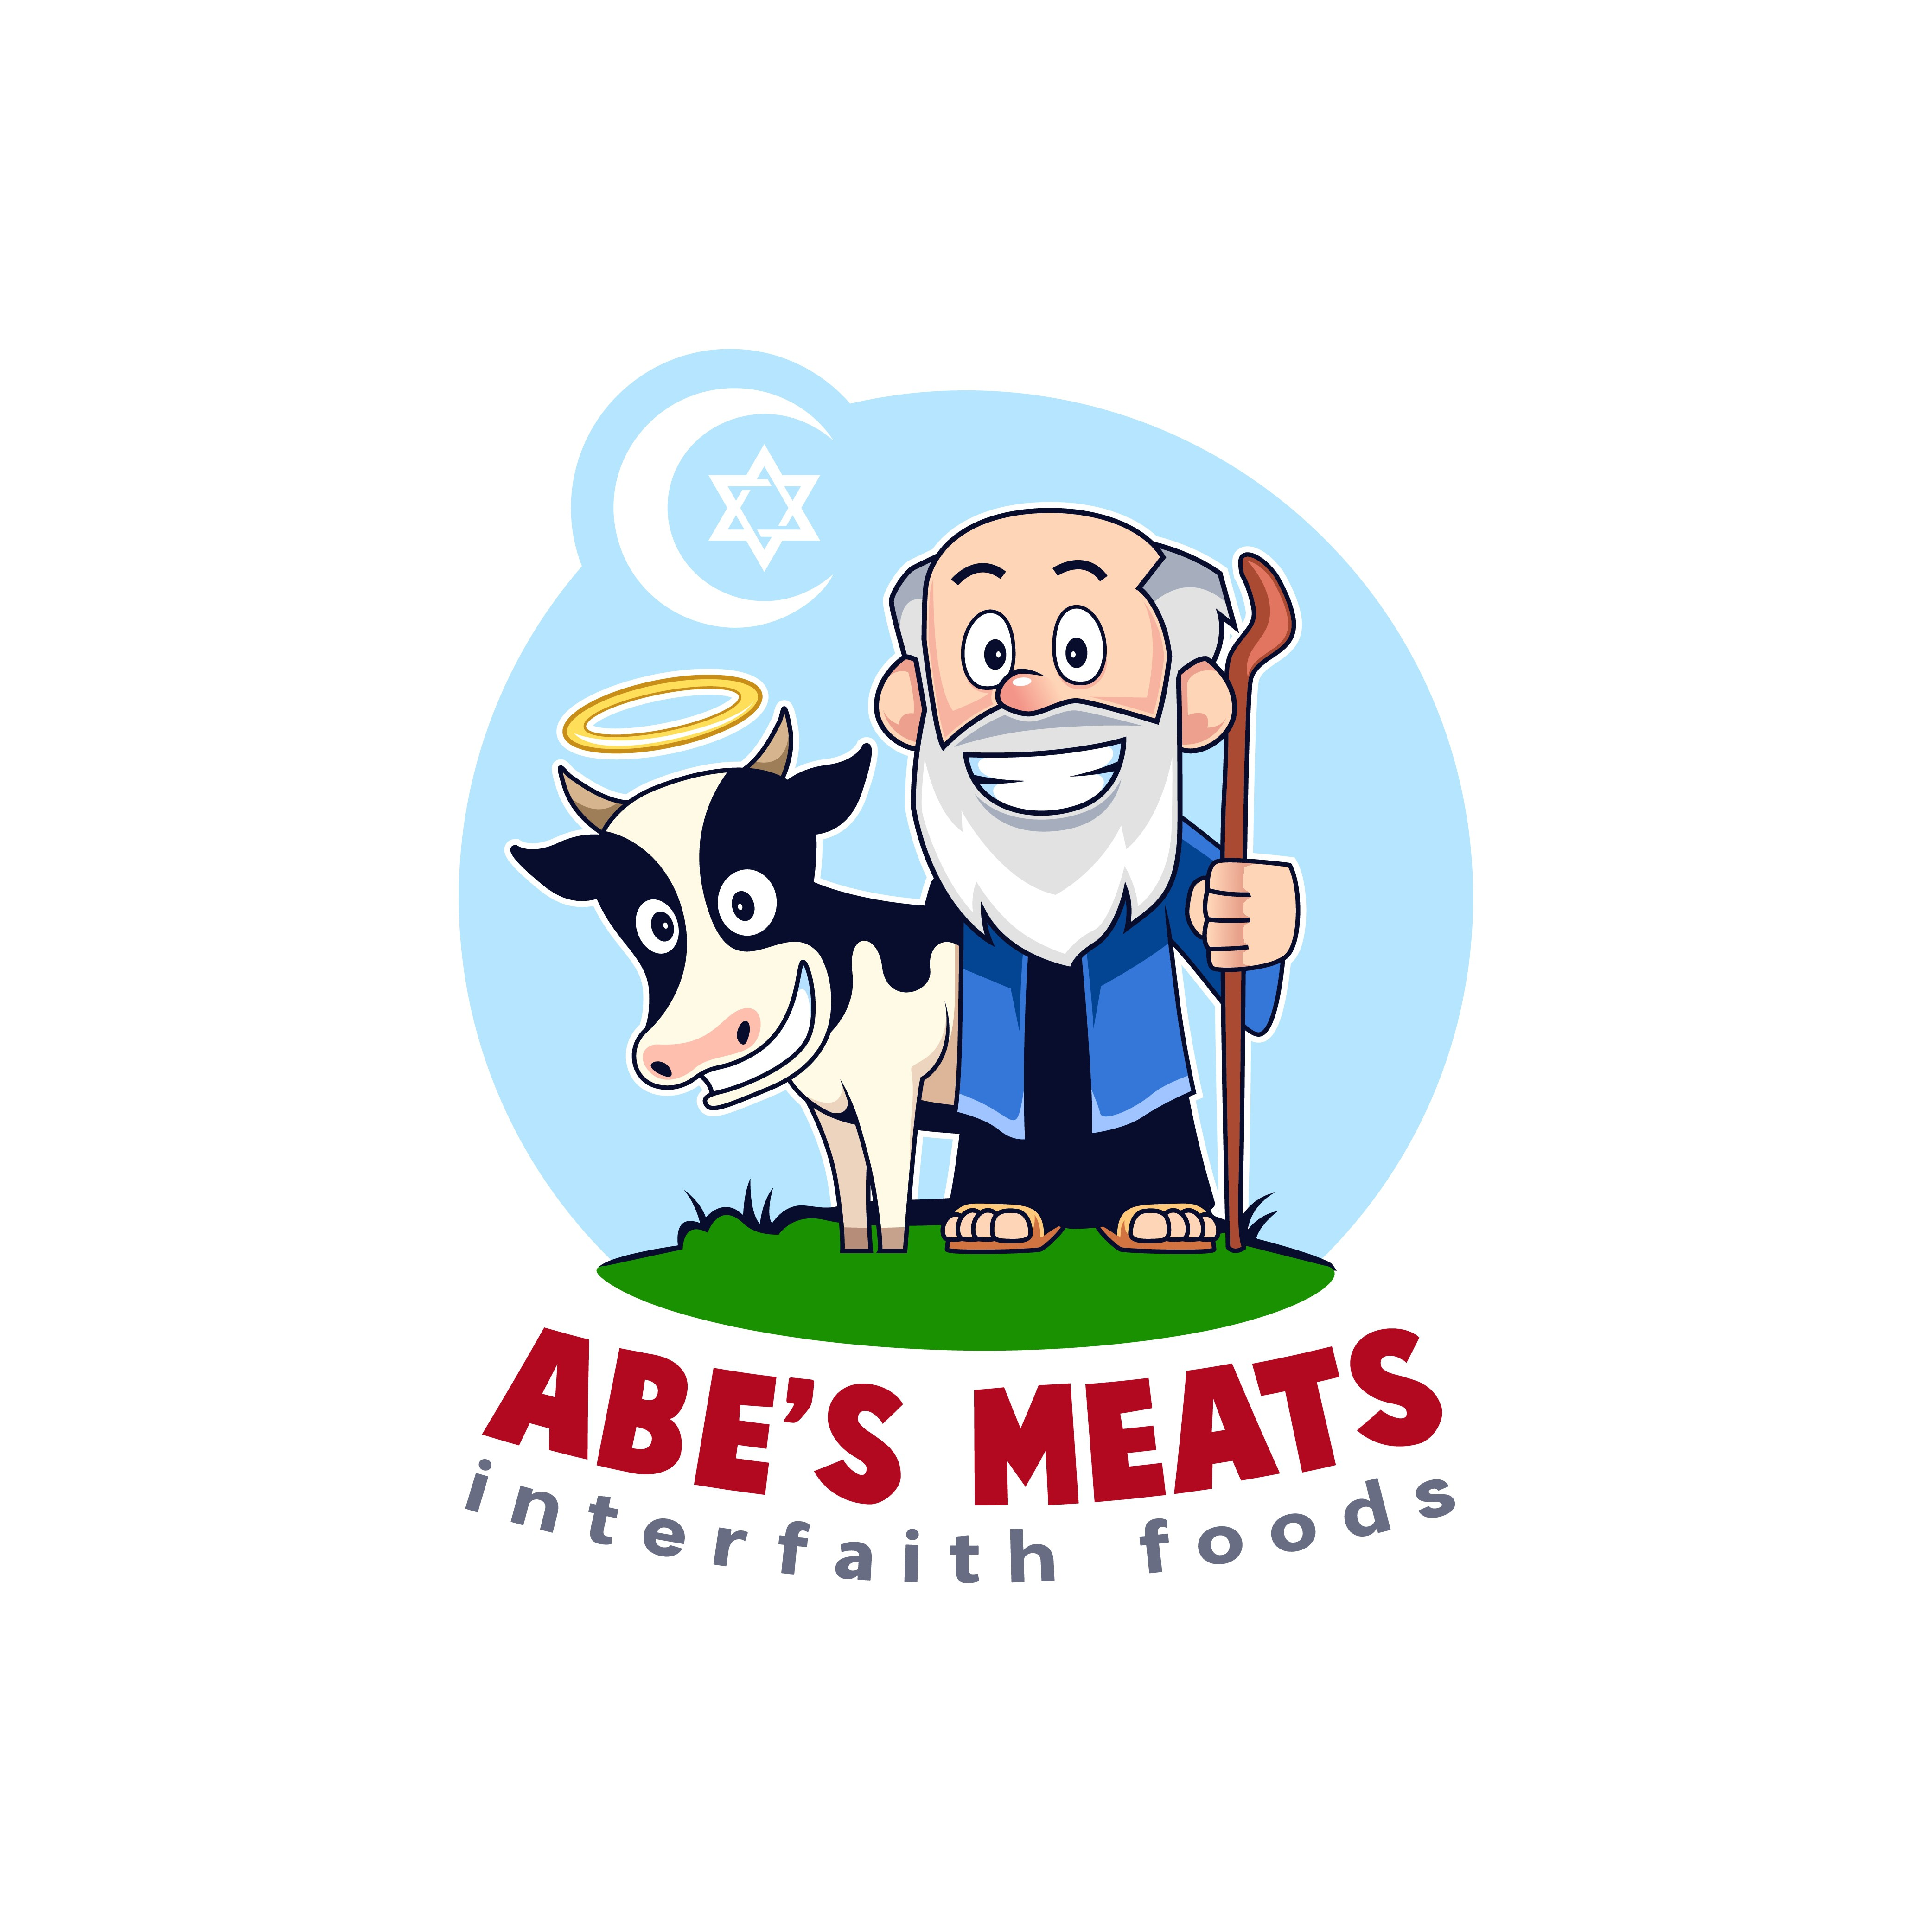 Create a Simple, Colorful Cartoon Mascot Logo for Abe's Meats